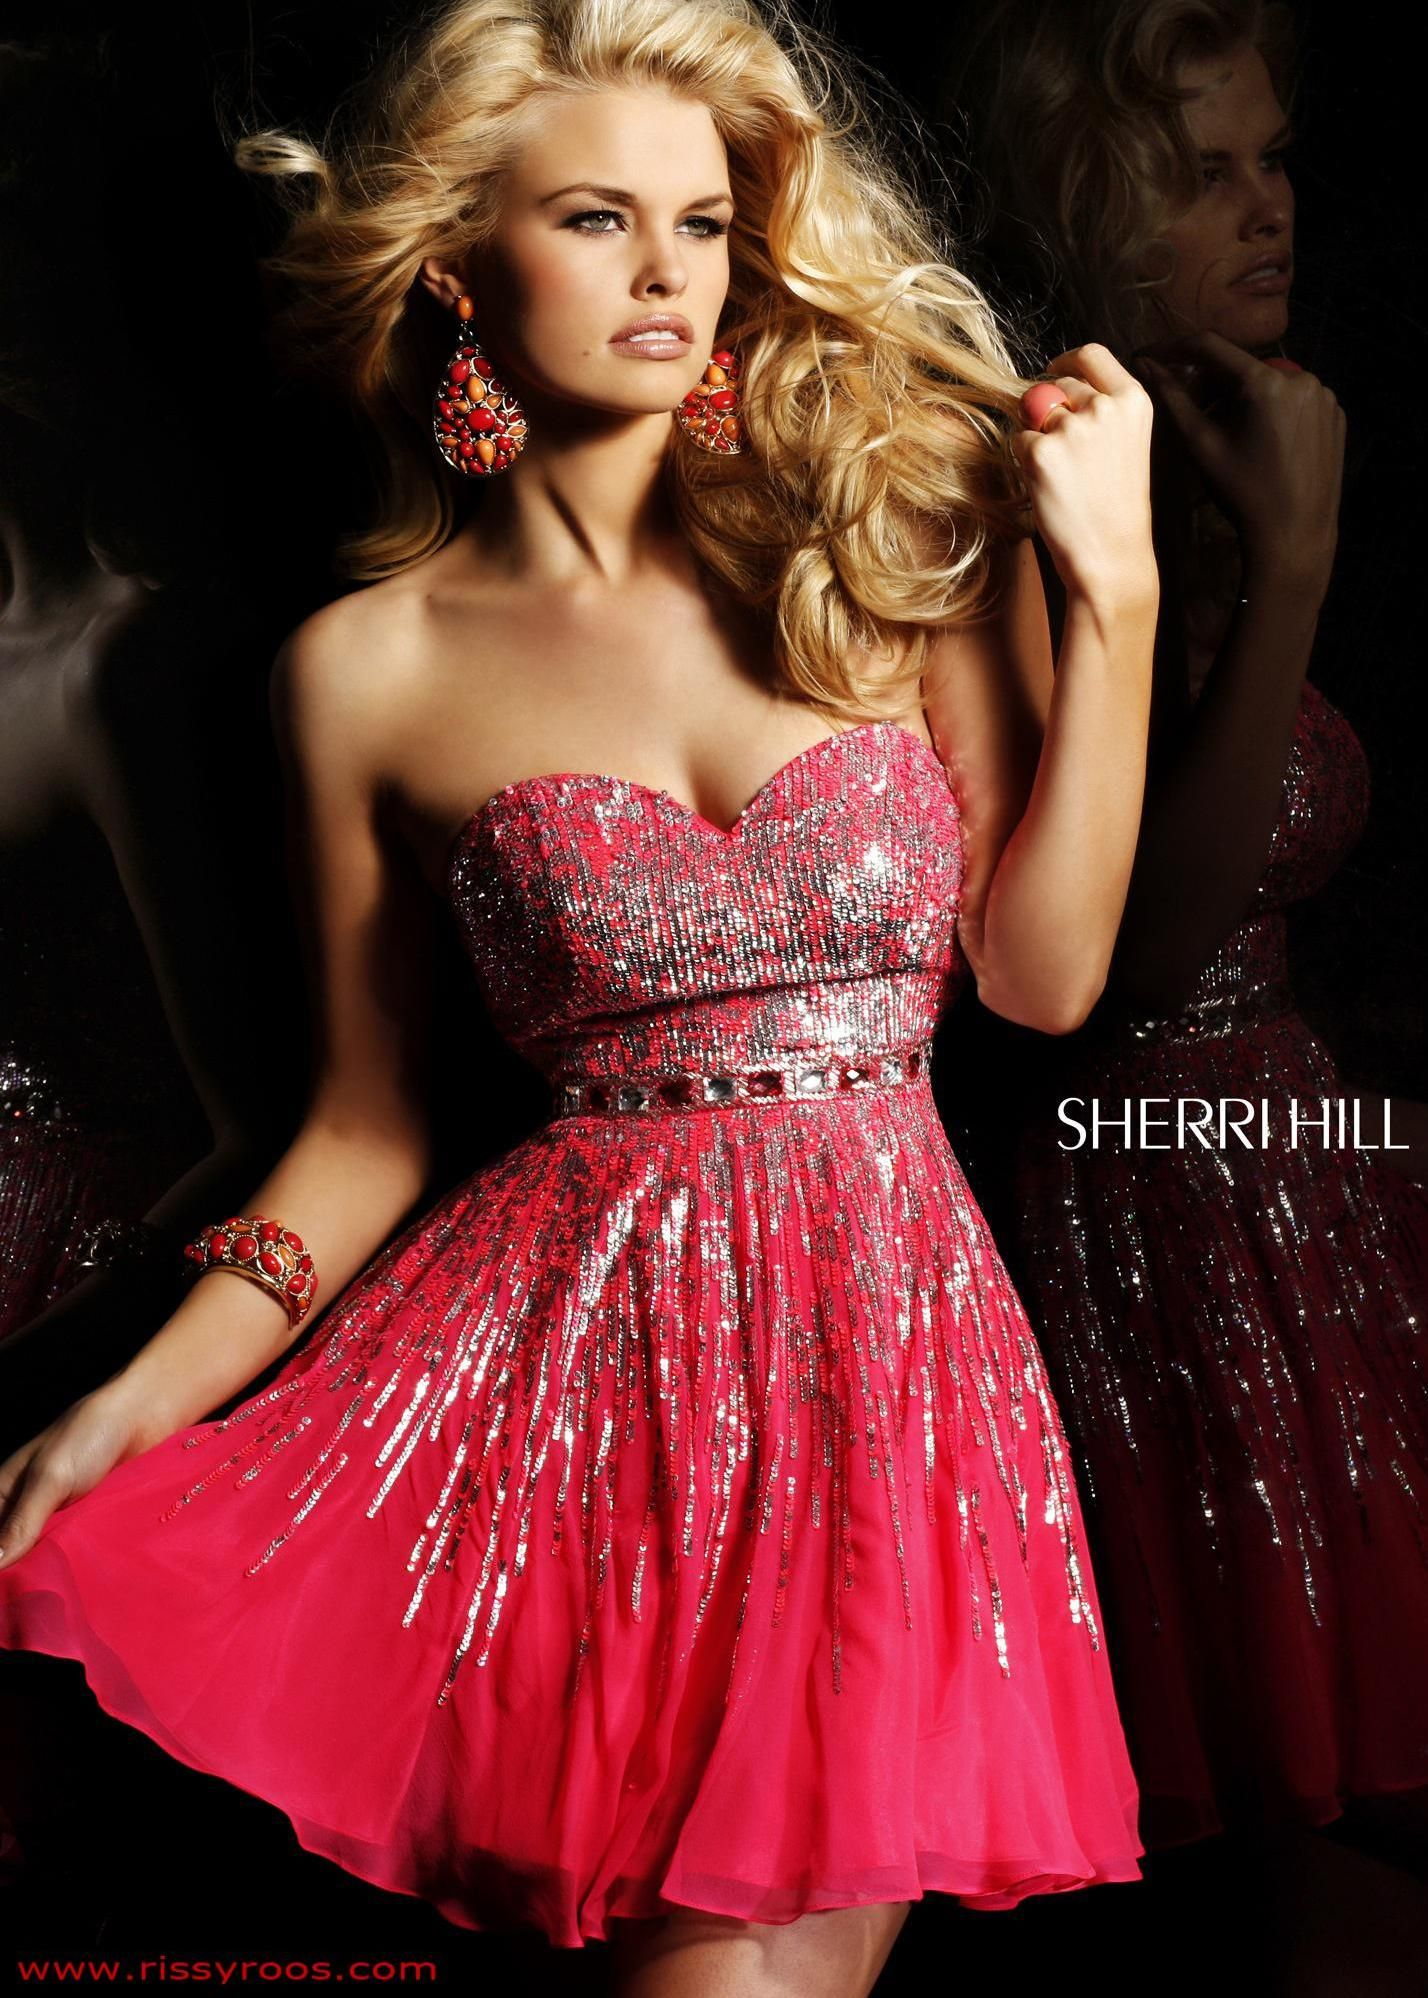 Sherri hill prom dress style available in coralsilver aqua